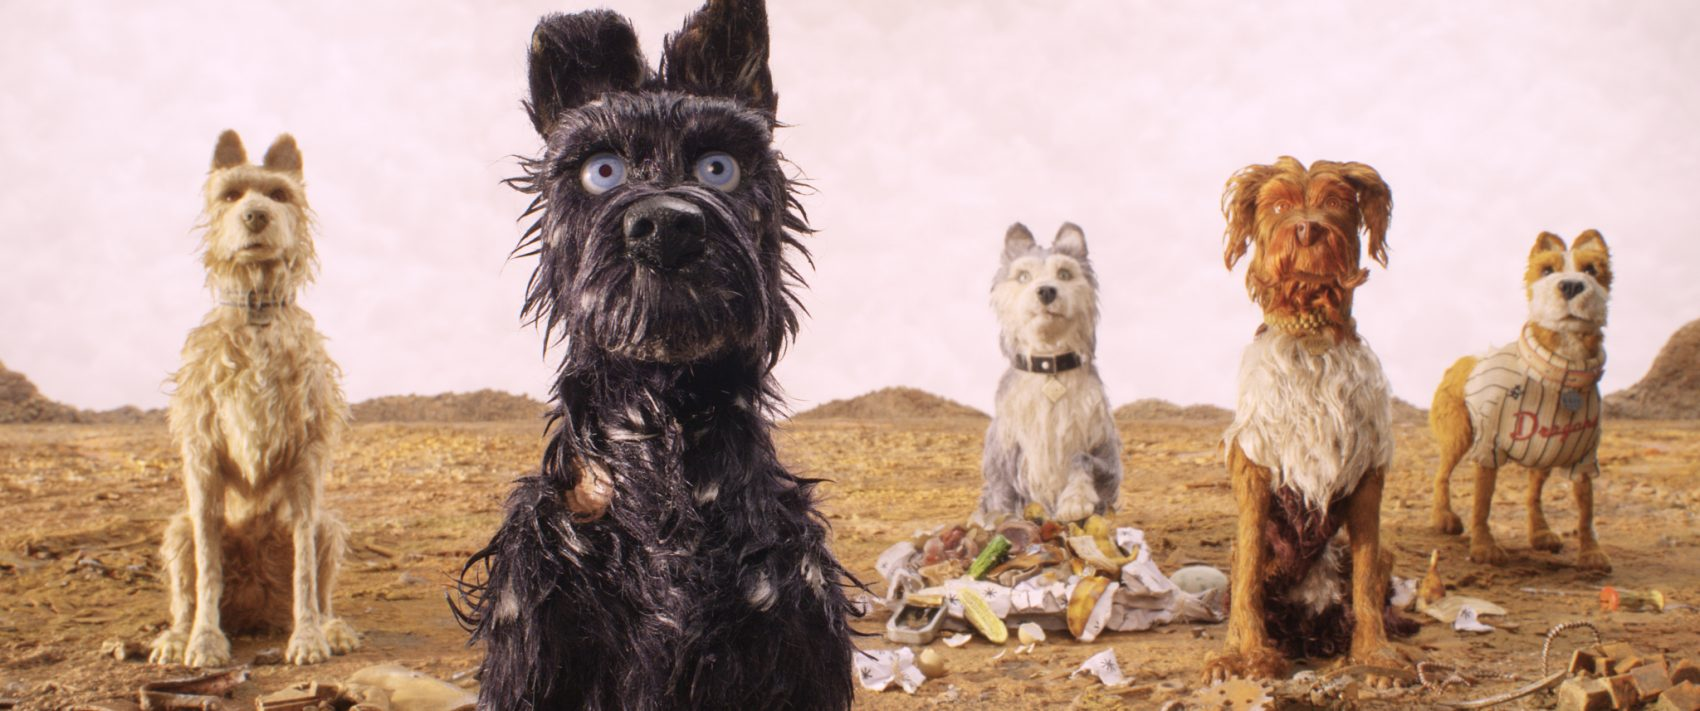 Free Download With Stunning Visuals Wes Andersons Isle Of Dogs Delivers A 1700x711 For Your Desktop Mobile Tablet Explore 56 George Clooney Dog Wallpaper George Clooney Dog Wallpaper Descendants